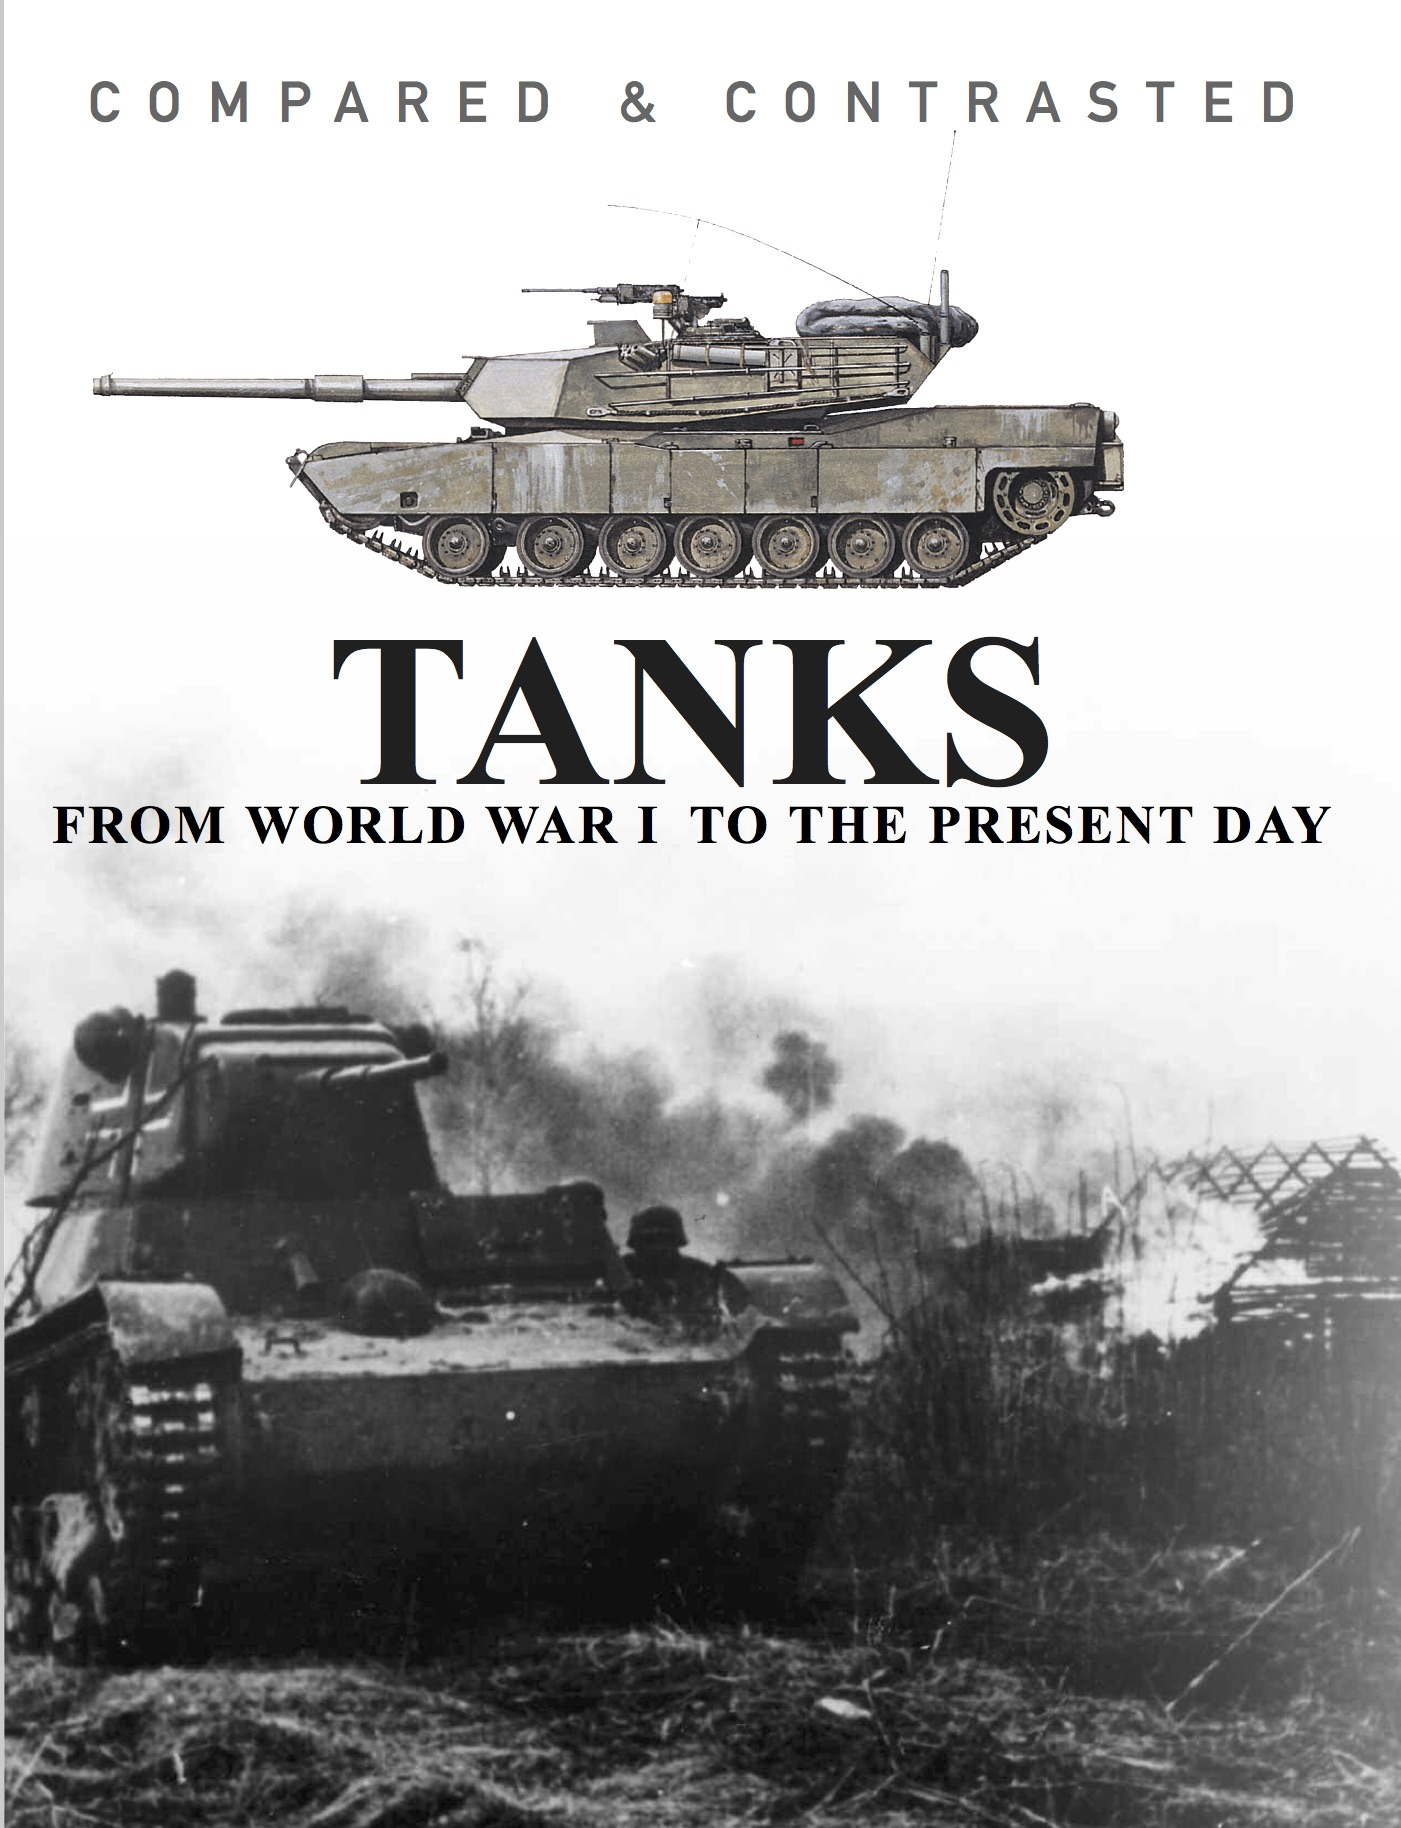 Tanks: Compared and Contrasted